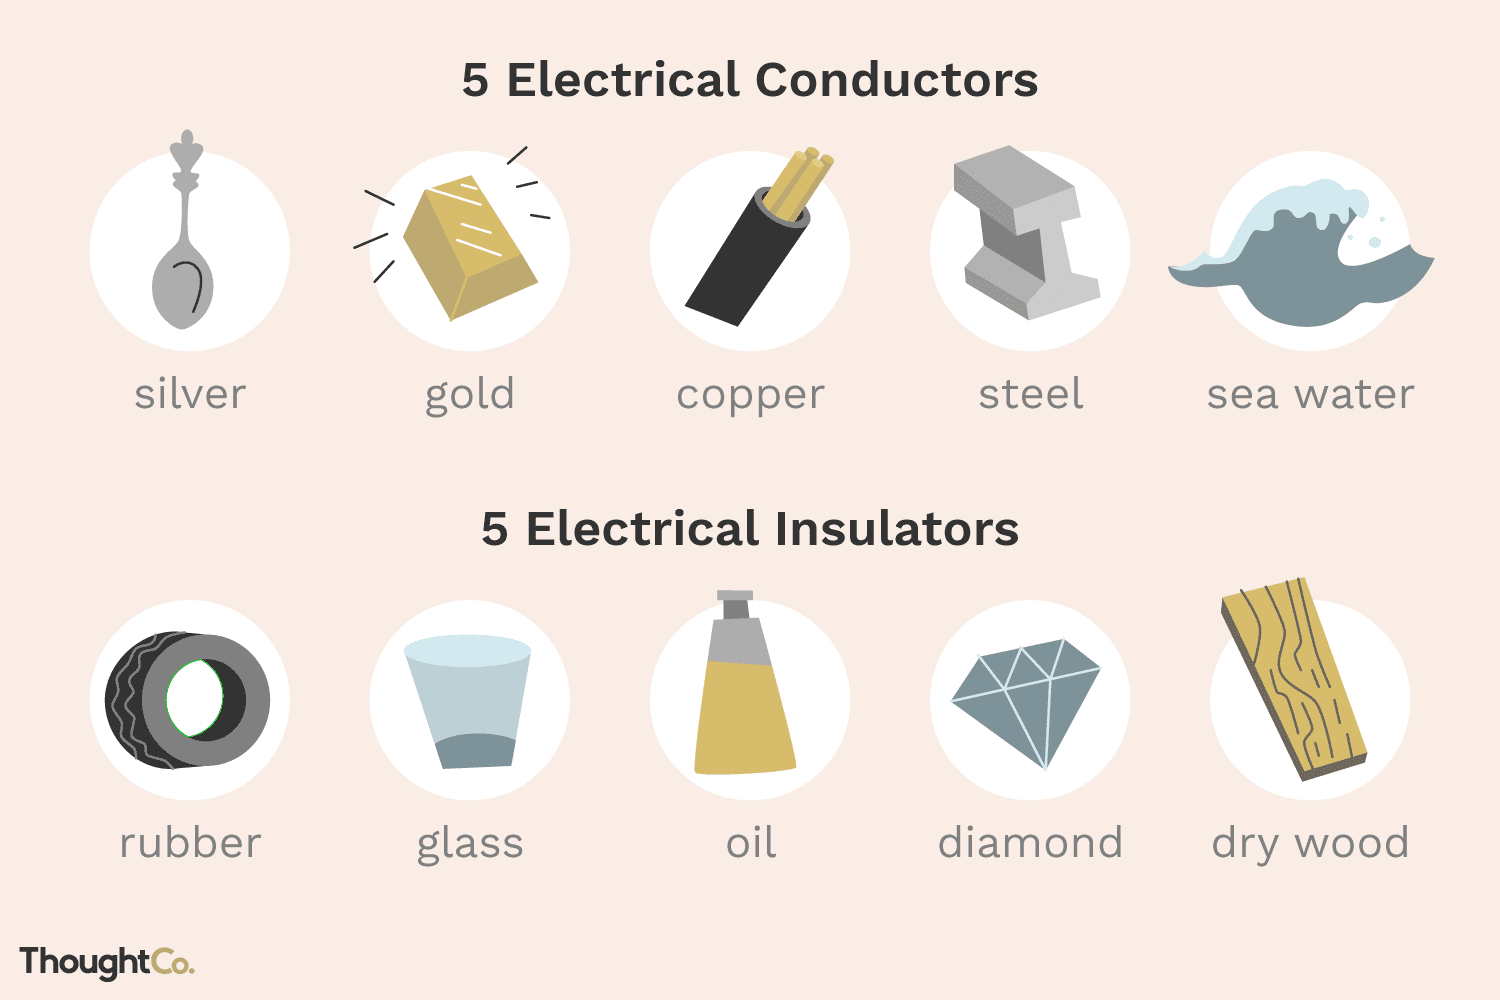 energy band diagram for conductors insulators and semiconductors kenwood wiring harness 10 examples of electrical